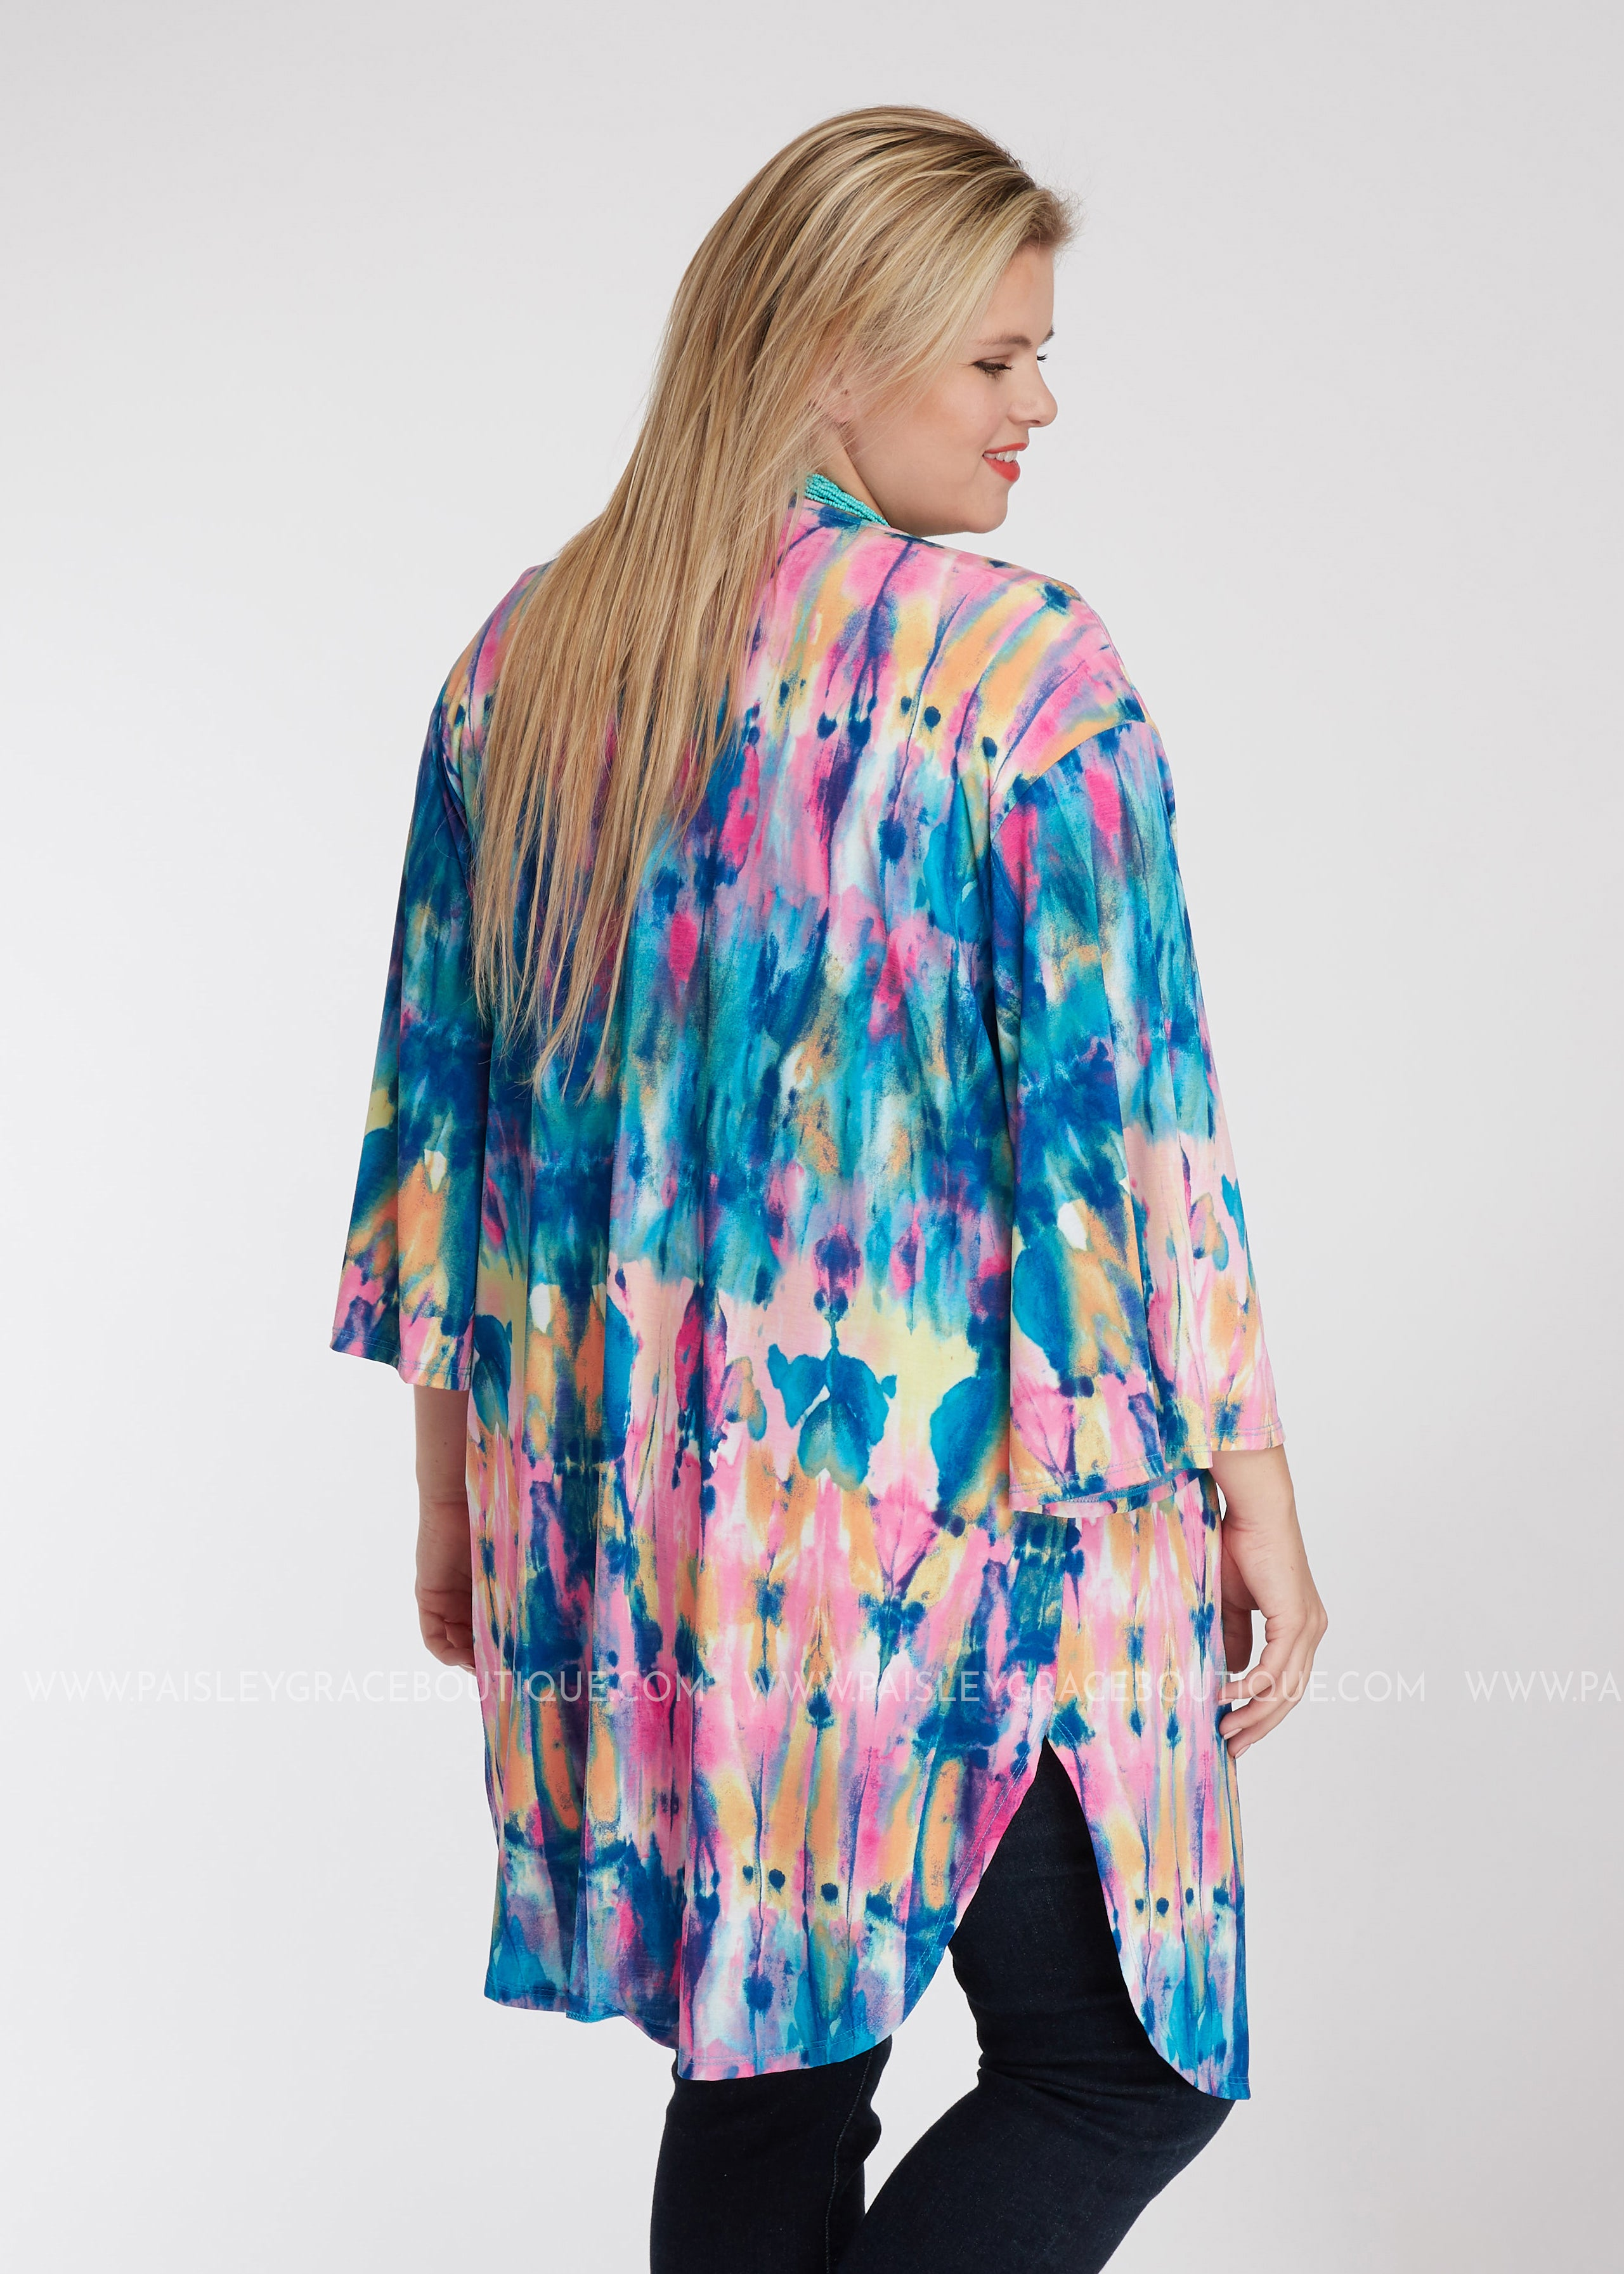 Inspired by You Kimono - FINAL SALE